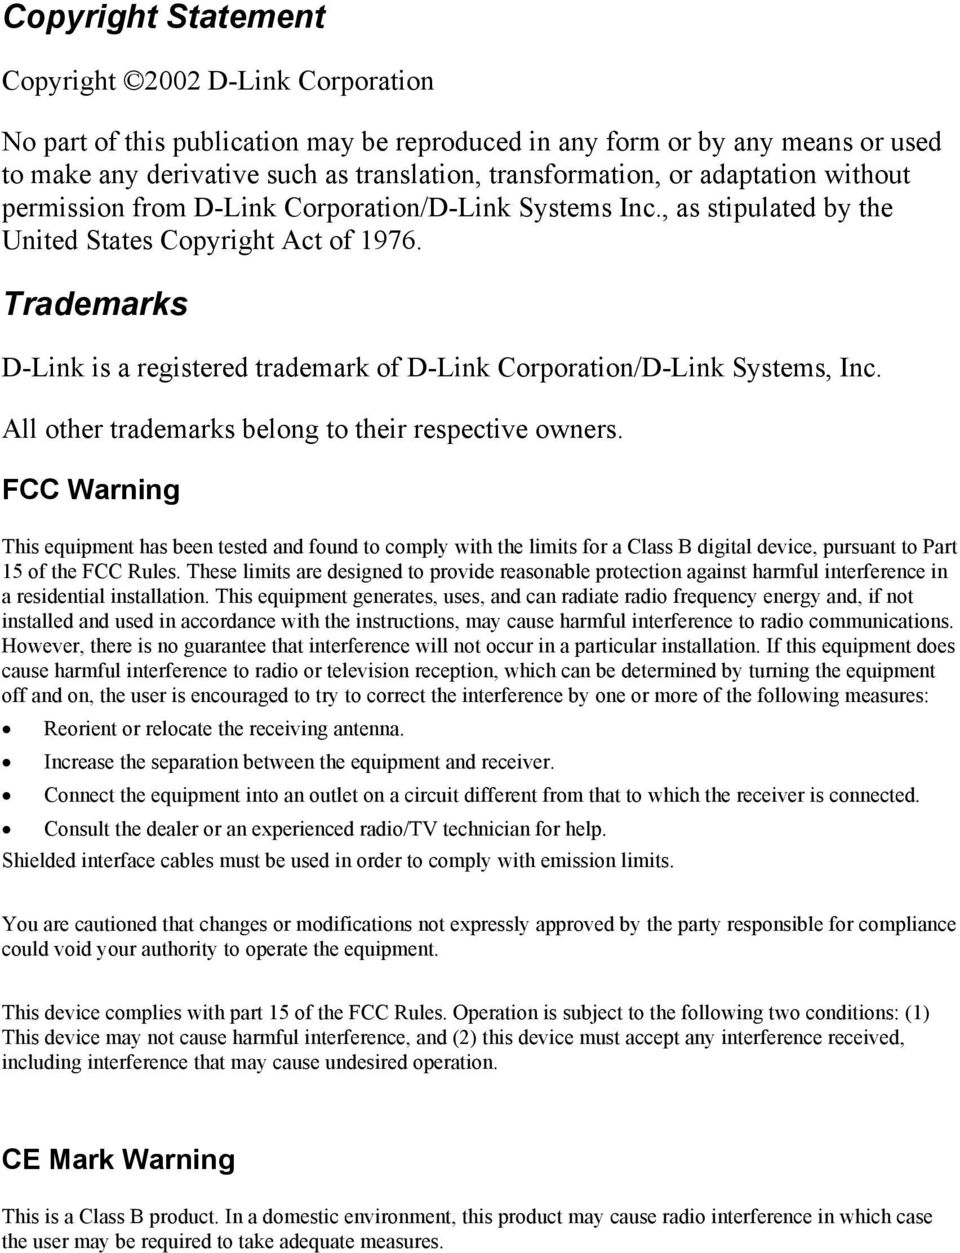 Trademarks D-Link is a registered trademark of D-Link Corporation/D-Link Systems, Inc. All other trademarks belong to their respective owners.